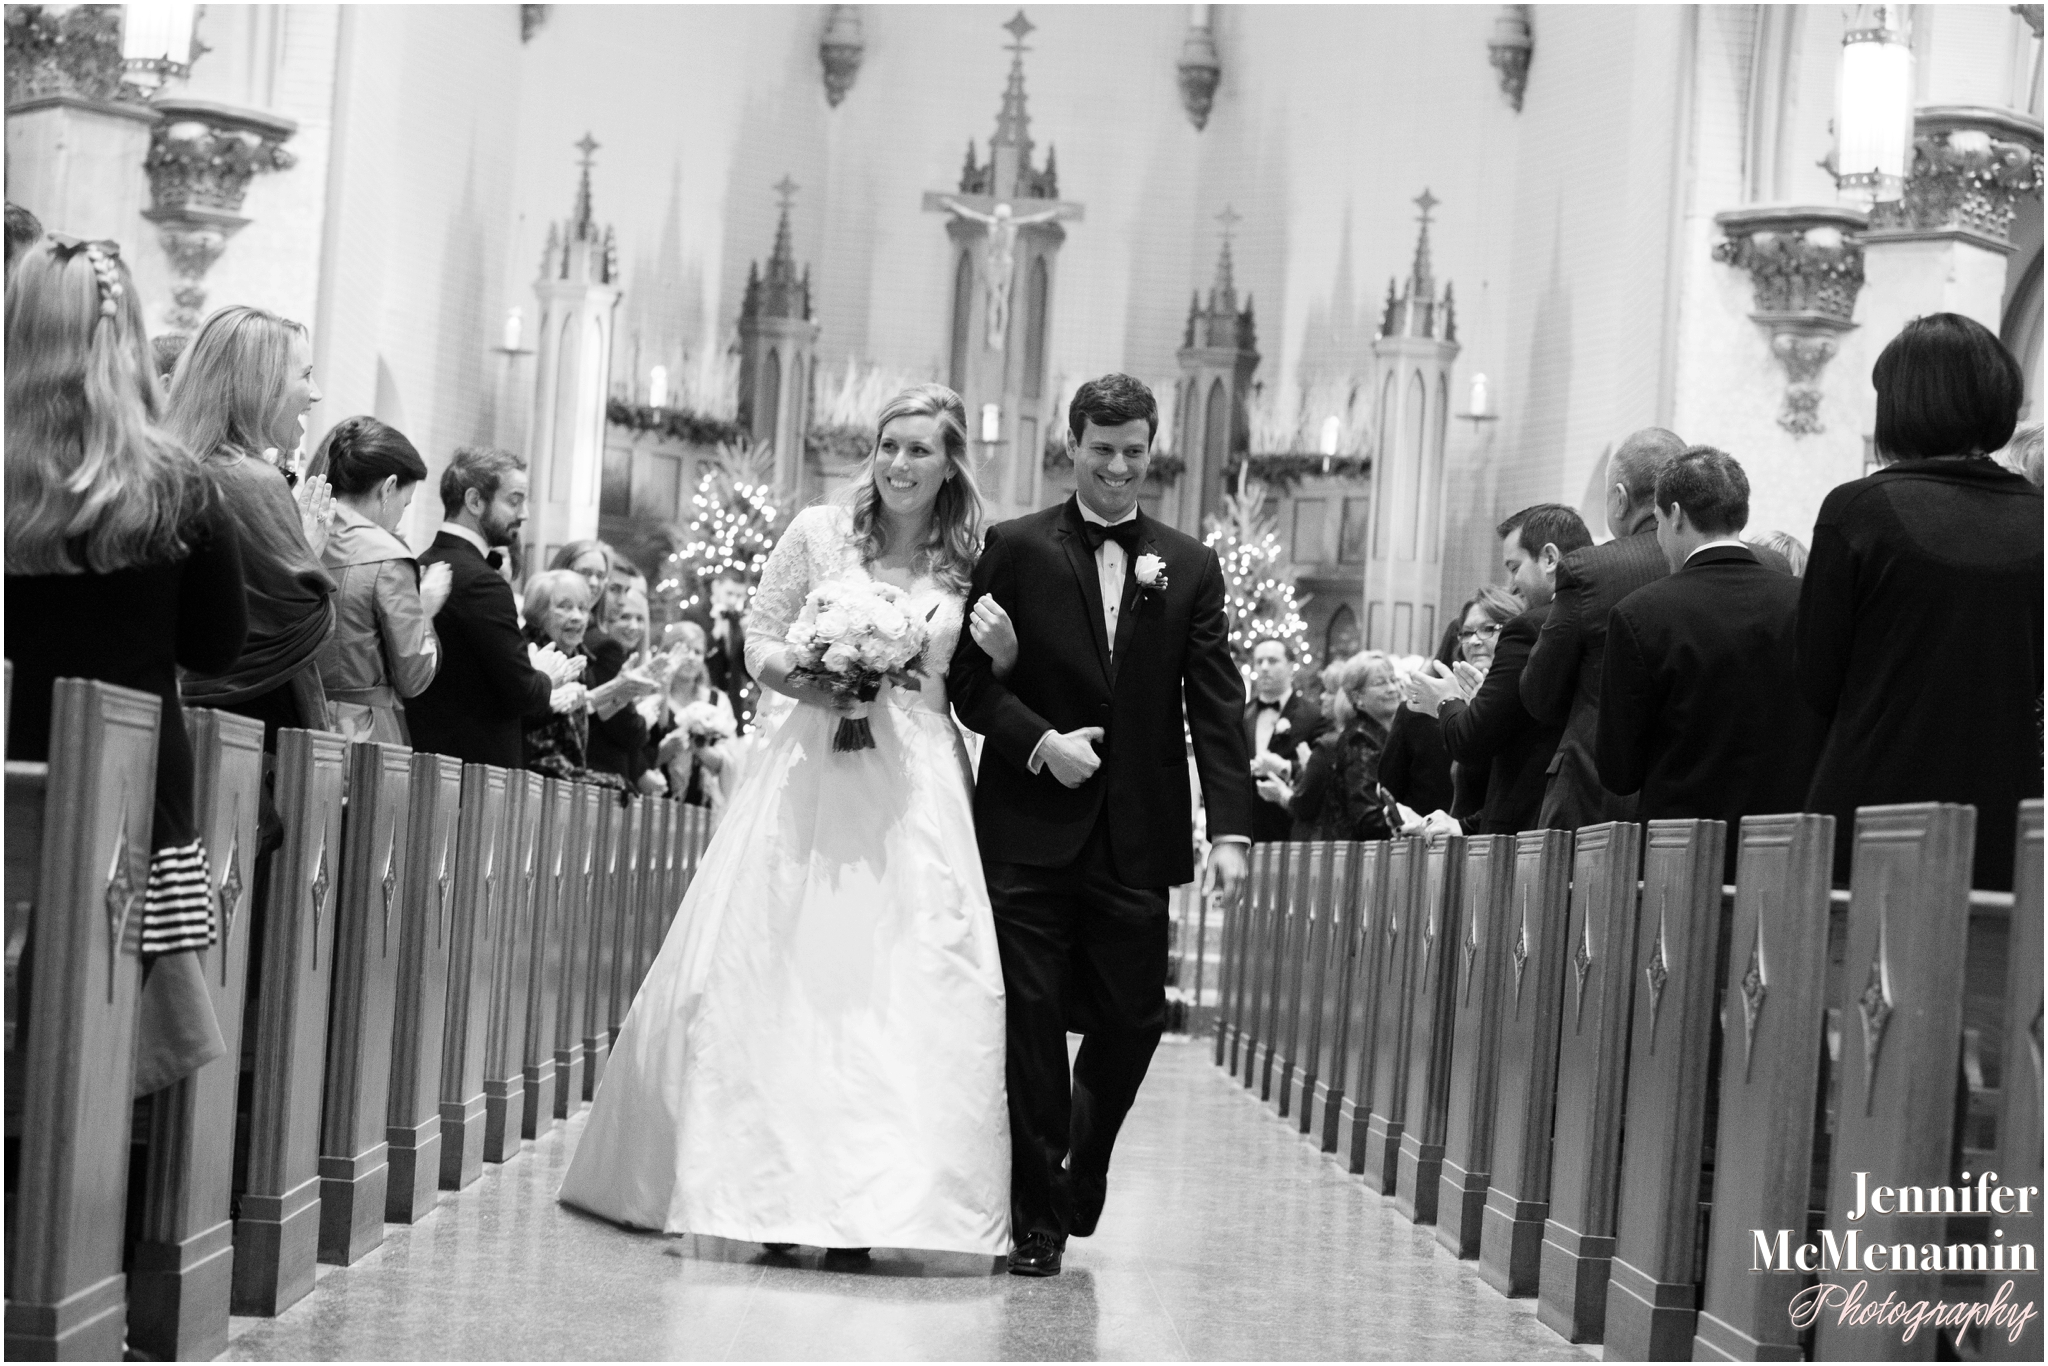 0056_RyanClemmens_01606bw-0437_JenniferMcMenaminPhotography_Immaculate-Conception-Church_The-Cloisters_Baltimore-wedding-photography_Baltimore-wedding-photographer